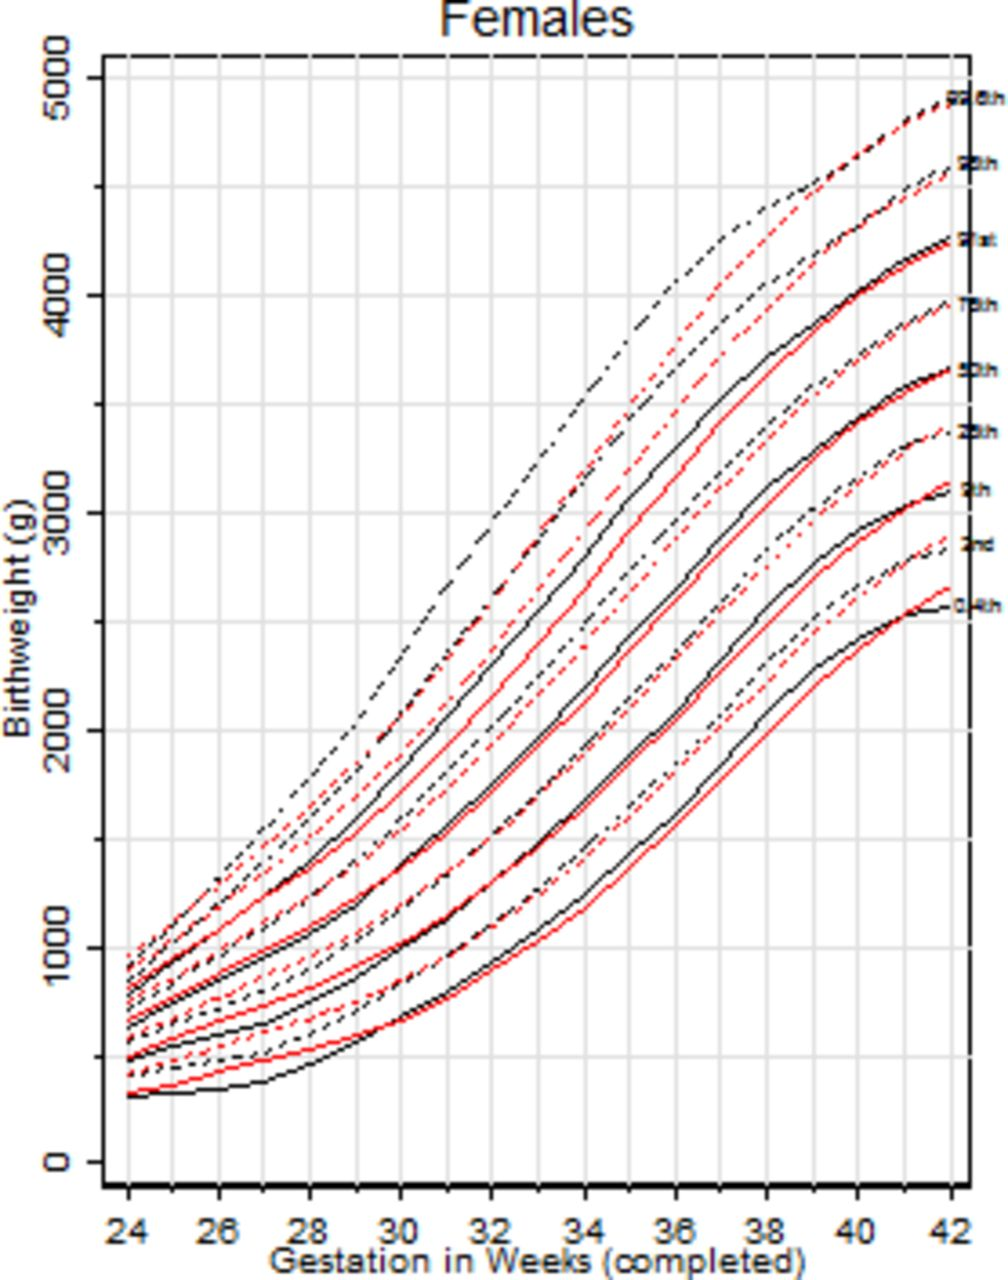 Download figure also updated birth weight centiles for england and wales adc fetal rh fnj